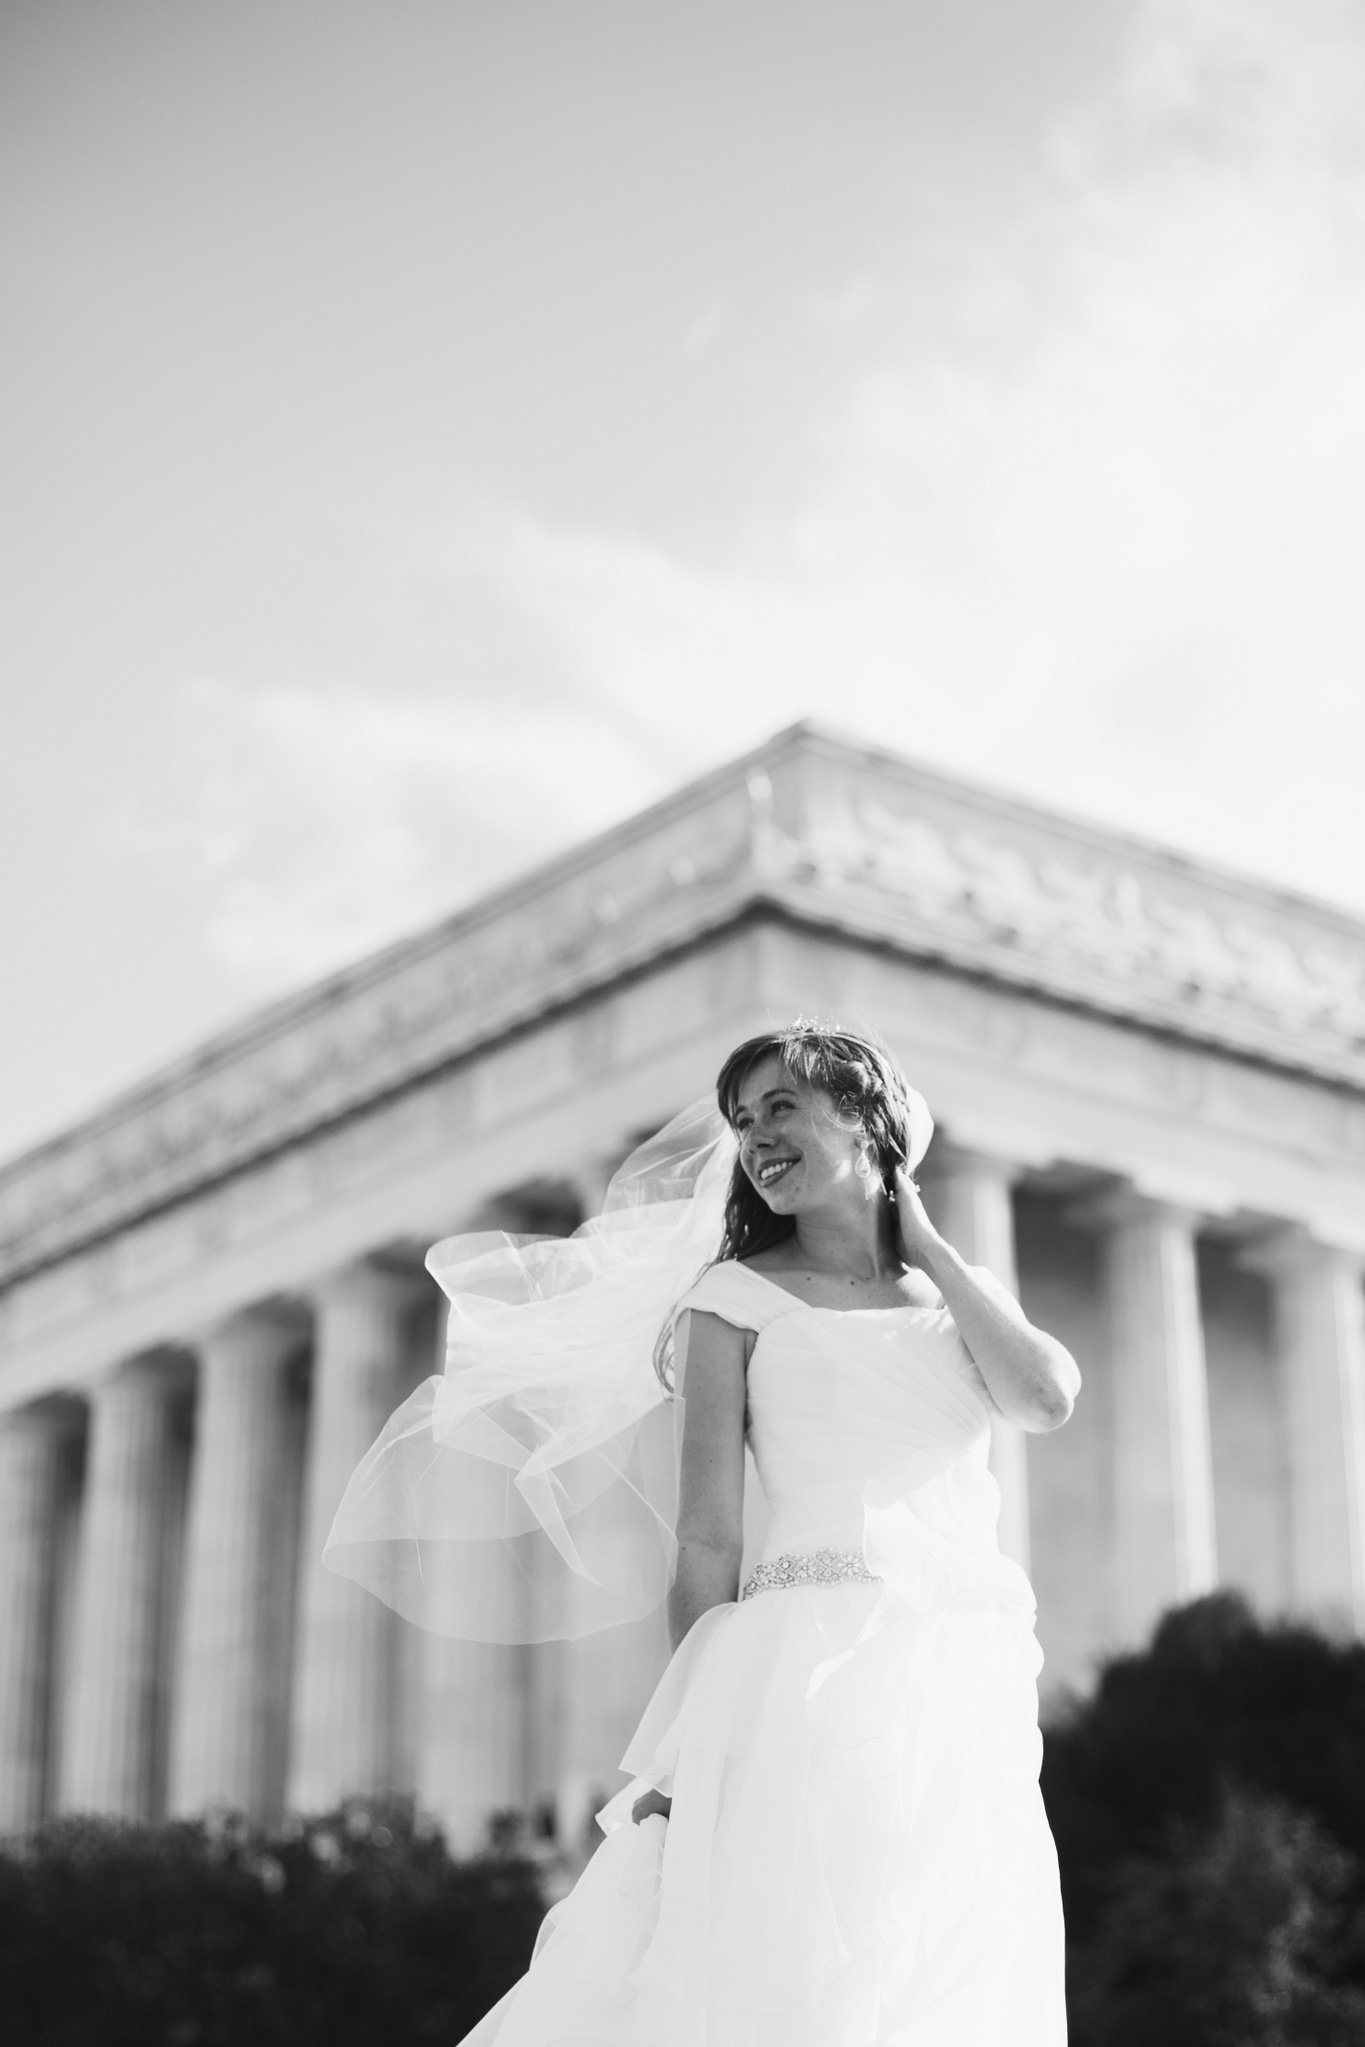 washington dc, lincoln memorial wedding photos, couple portraits, bride